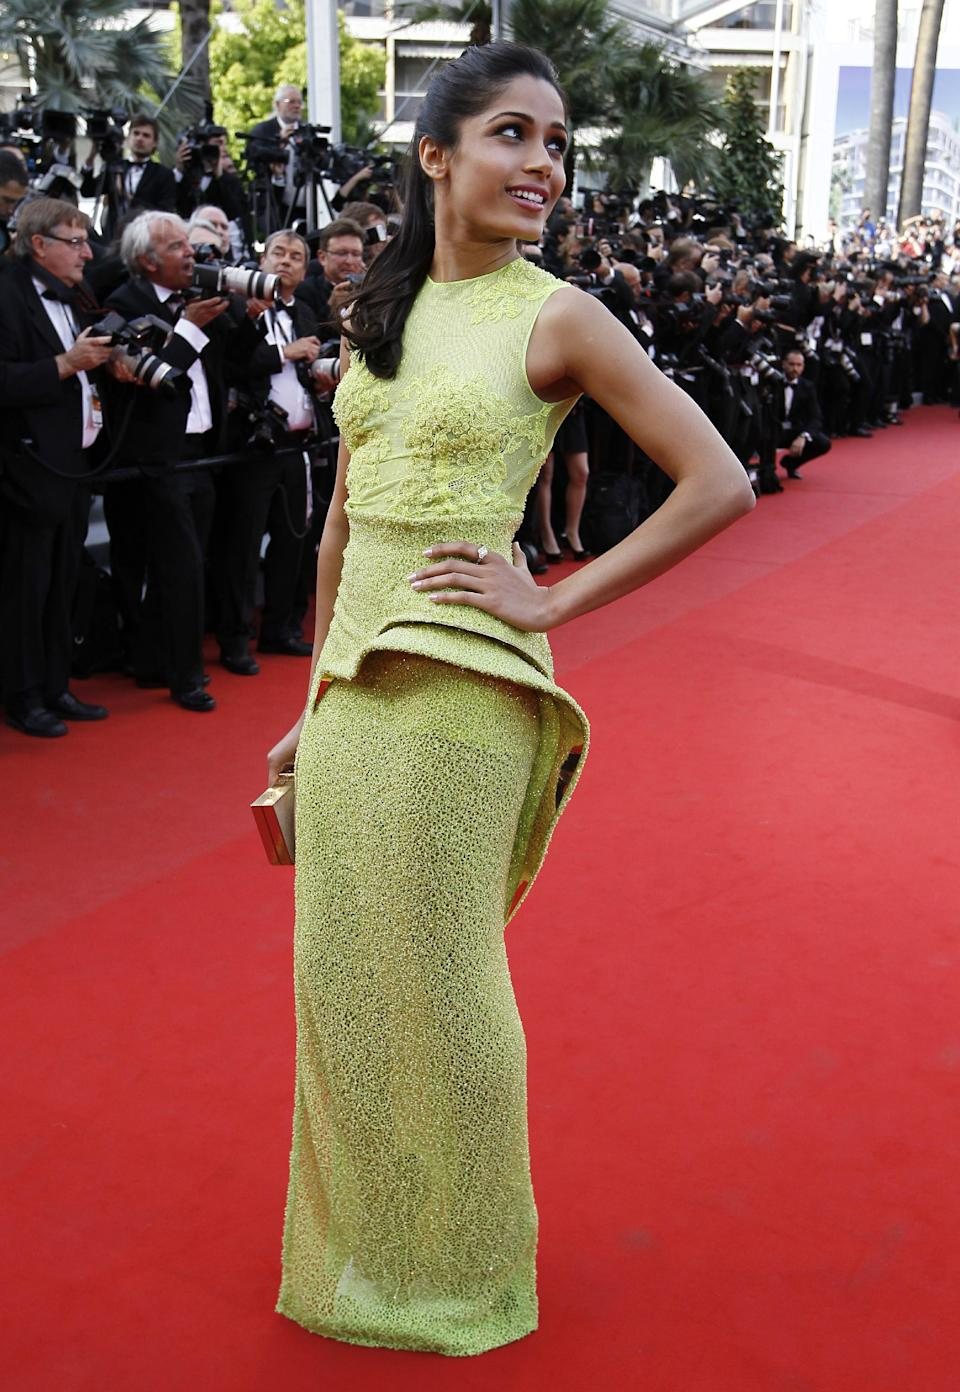 Actress Freida Pinto arrives for the screening of Rust and Bone at the 65th international film festival, in Cannes, southern France, Thursday, May 17, 2012.  Pinto is wearing Atelier Versace.(AP Photo/Francois Mori)